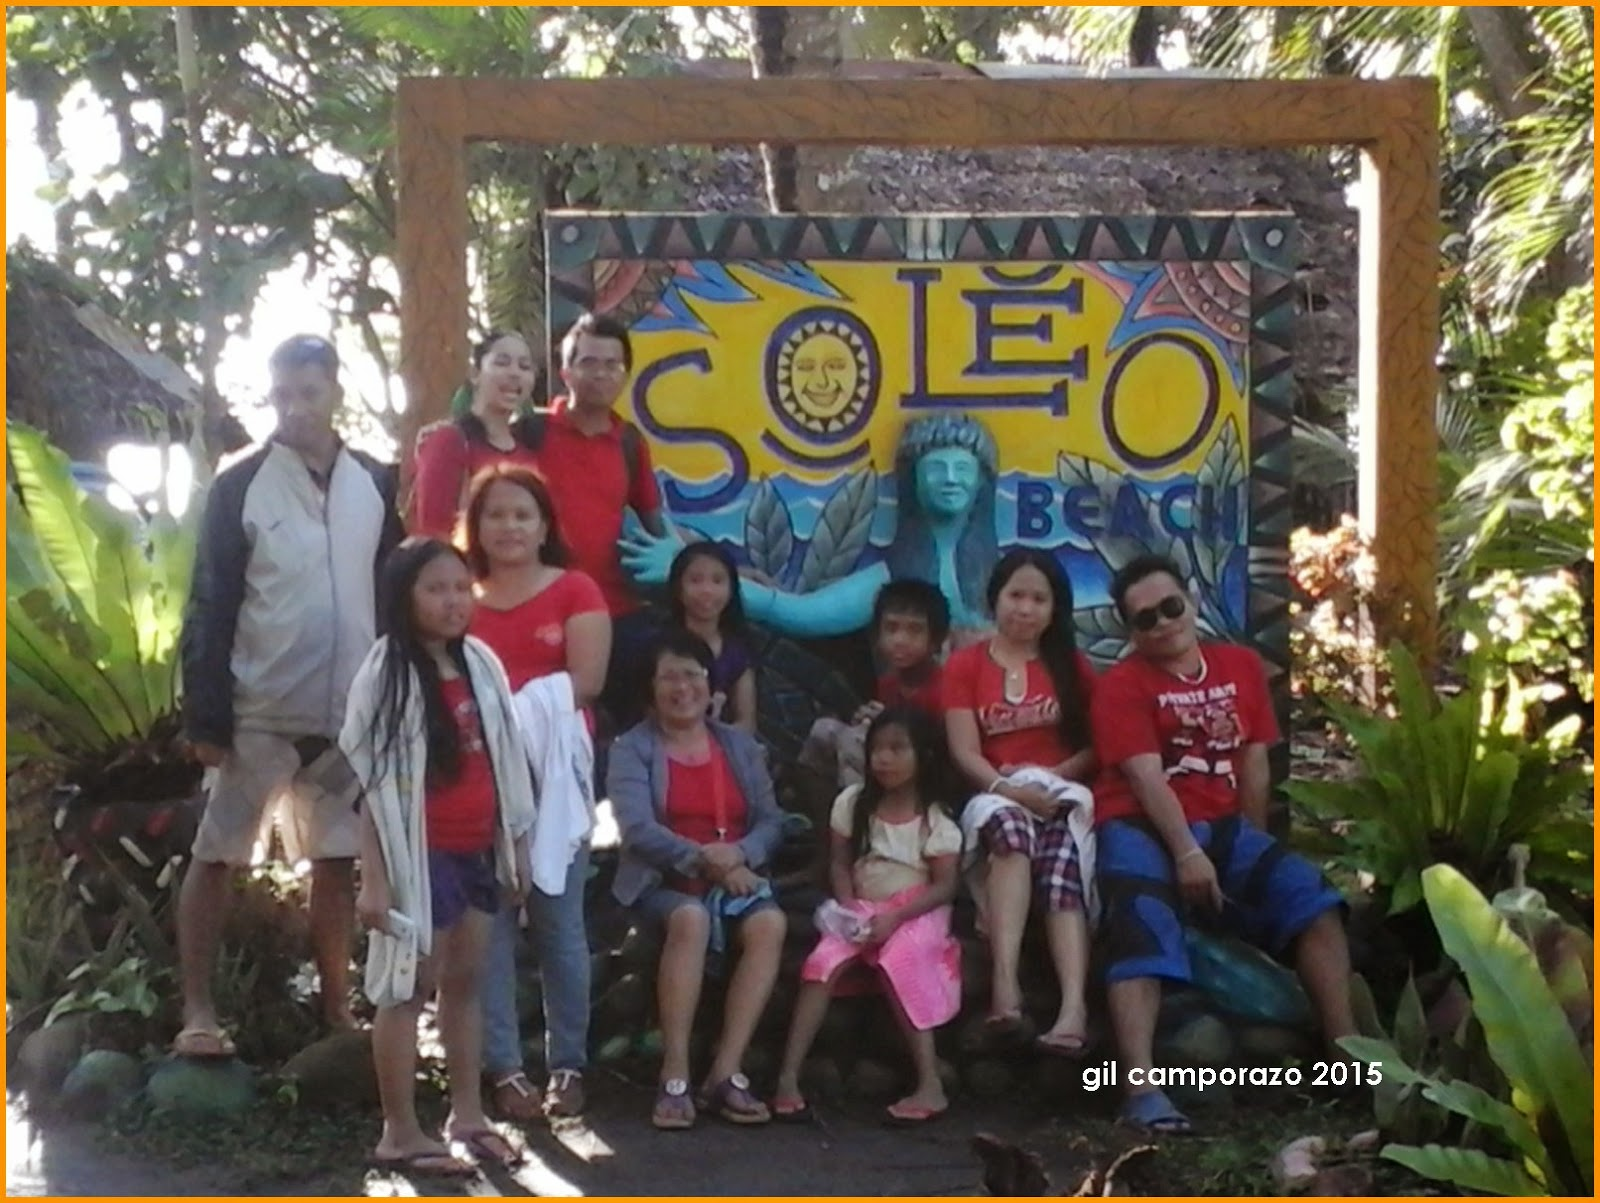 My family at Soleo Beach